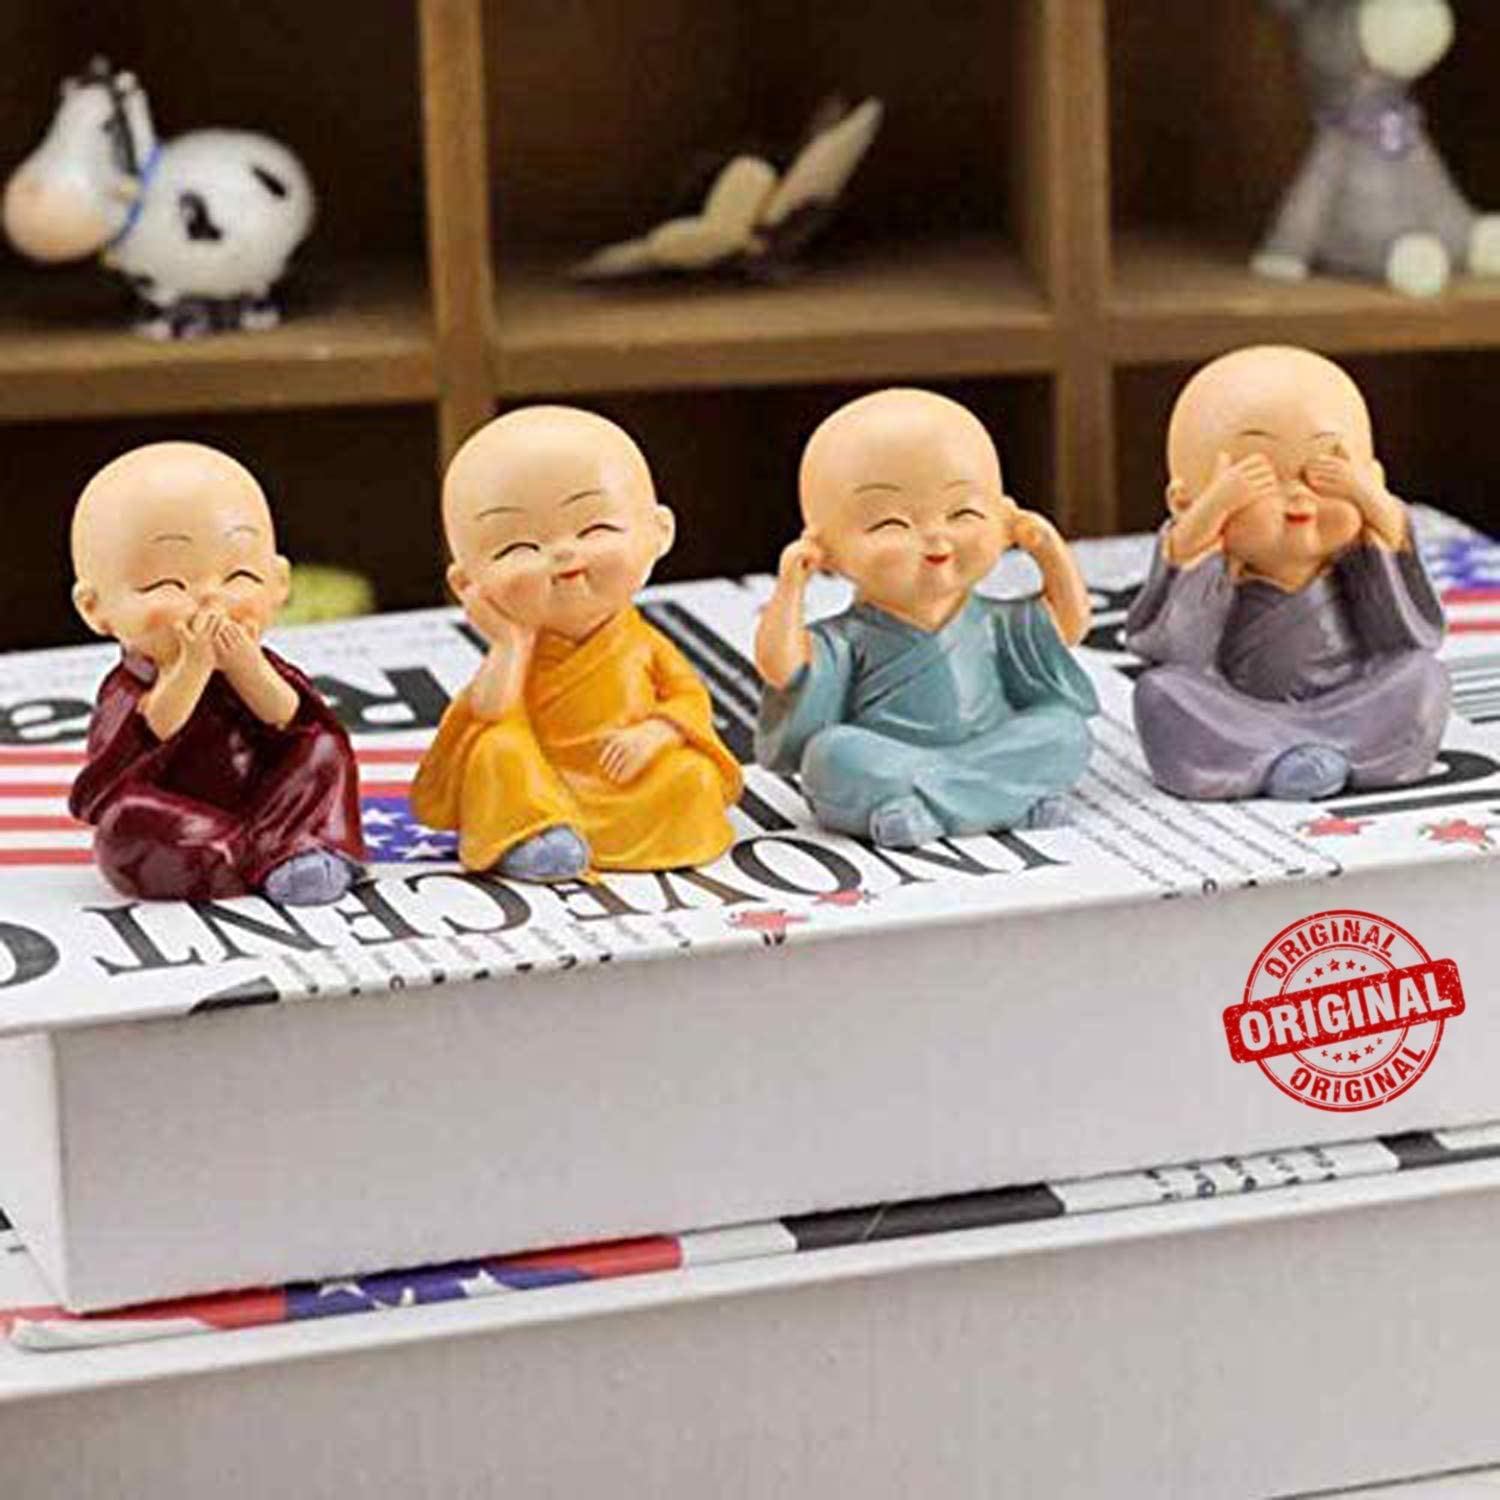 TIED RIBBONS Set of 4 Buddha Monks Statues Miniature Figurines Showpiece for Wall Shelf Table Desktop Car Dashboard Decoration Home Office Decor (Multi Color)